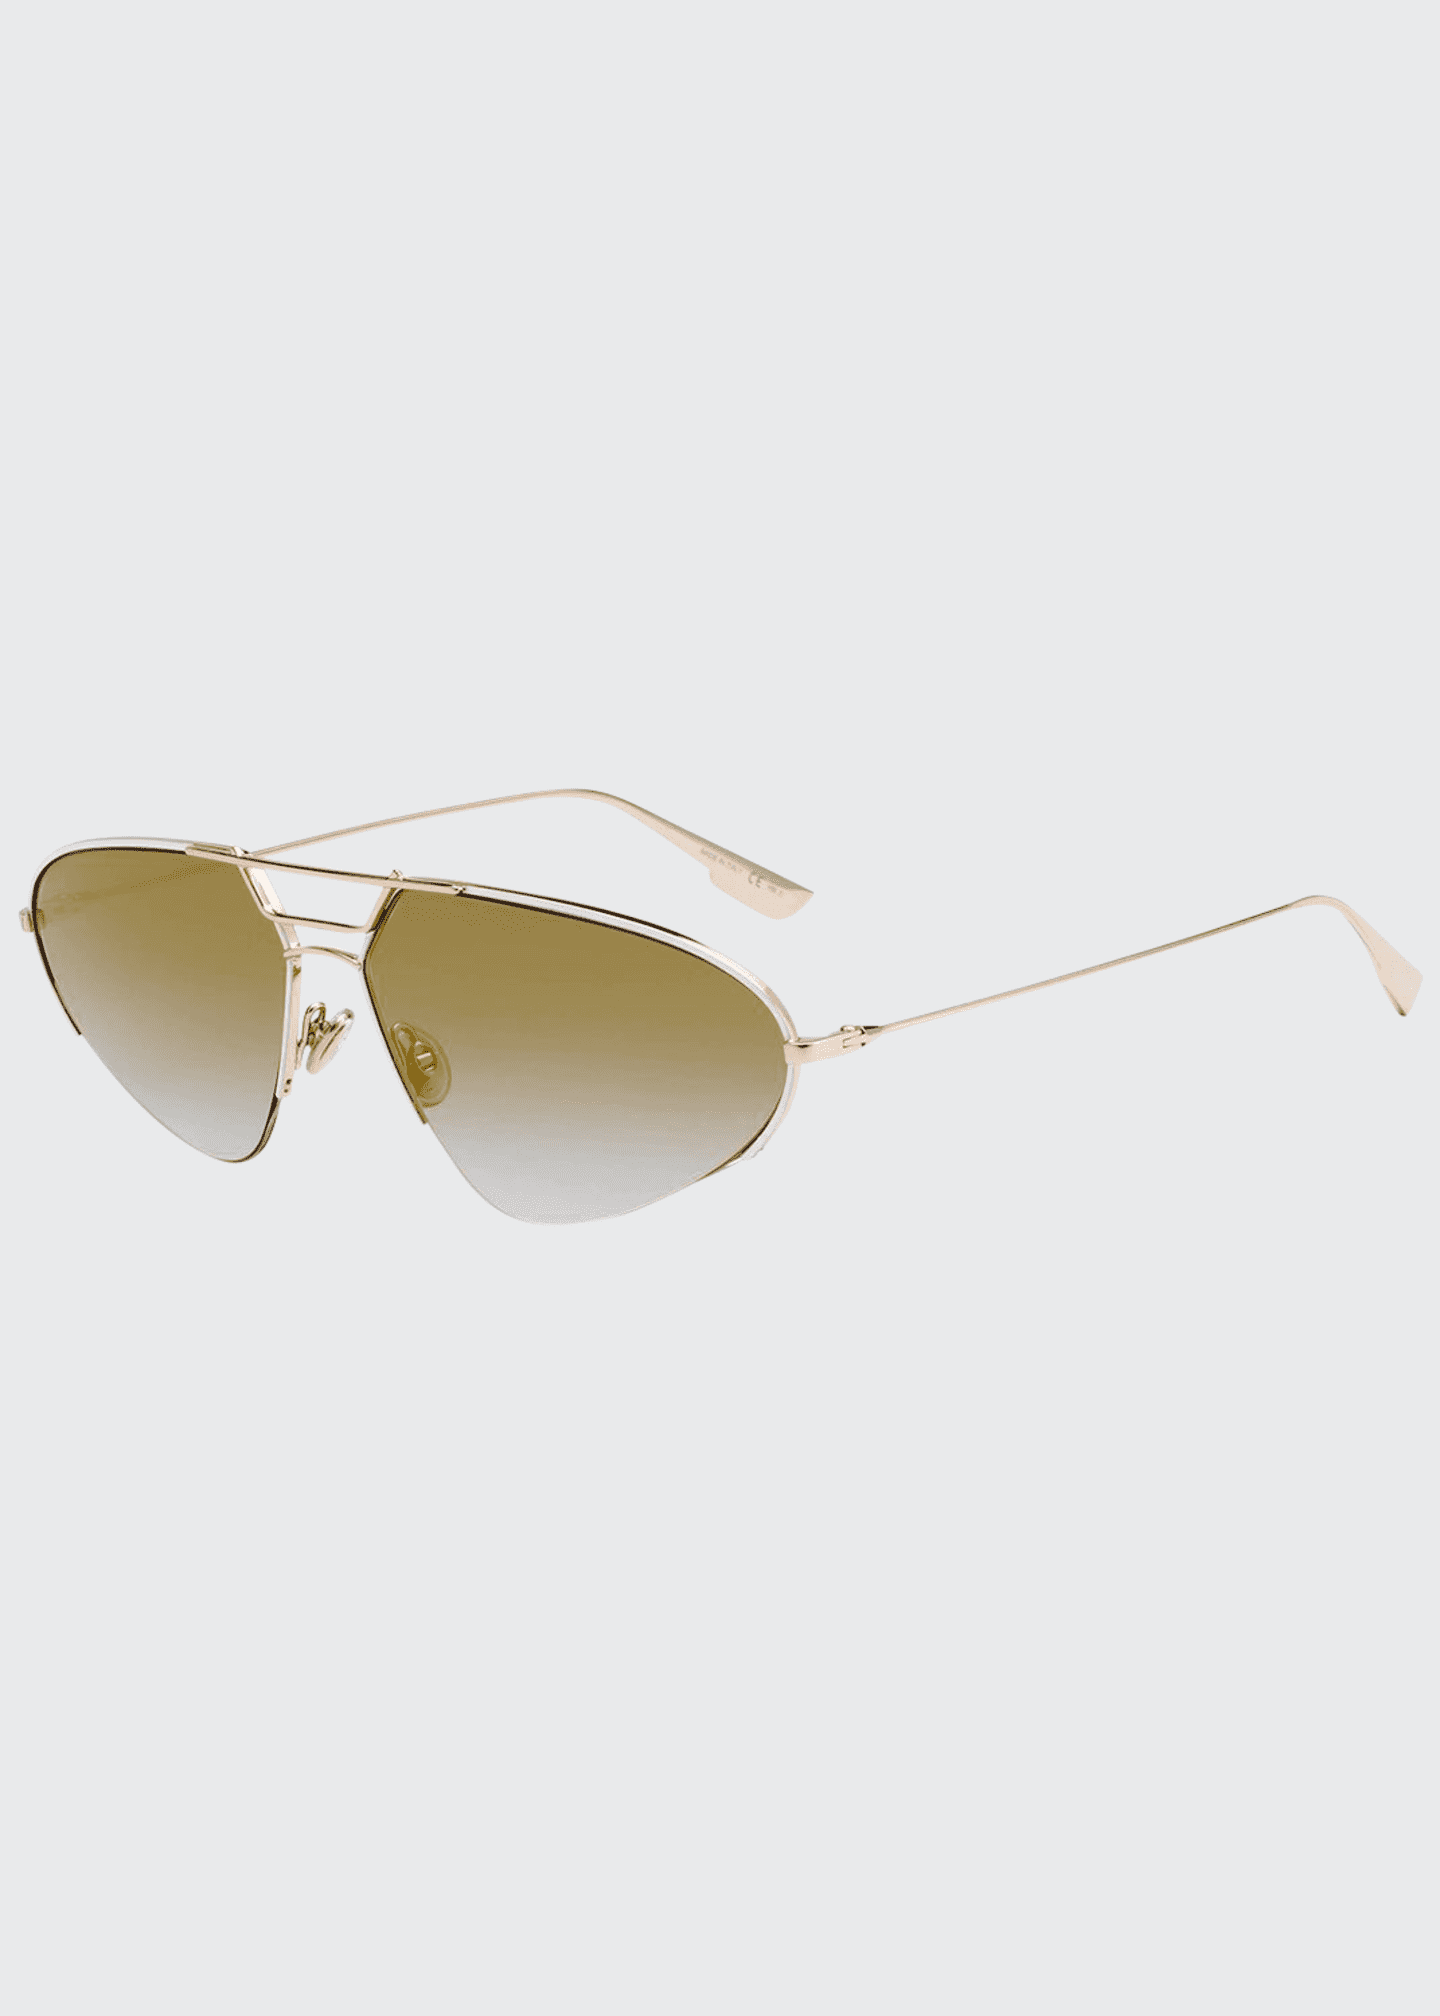 Image 1 of 1: DiorStellaire5 Oval Metal Sunglasses